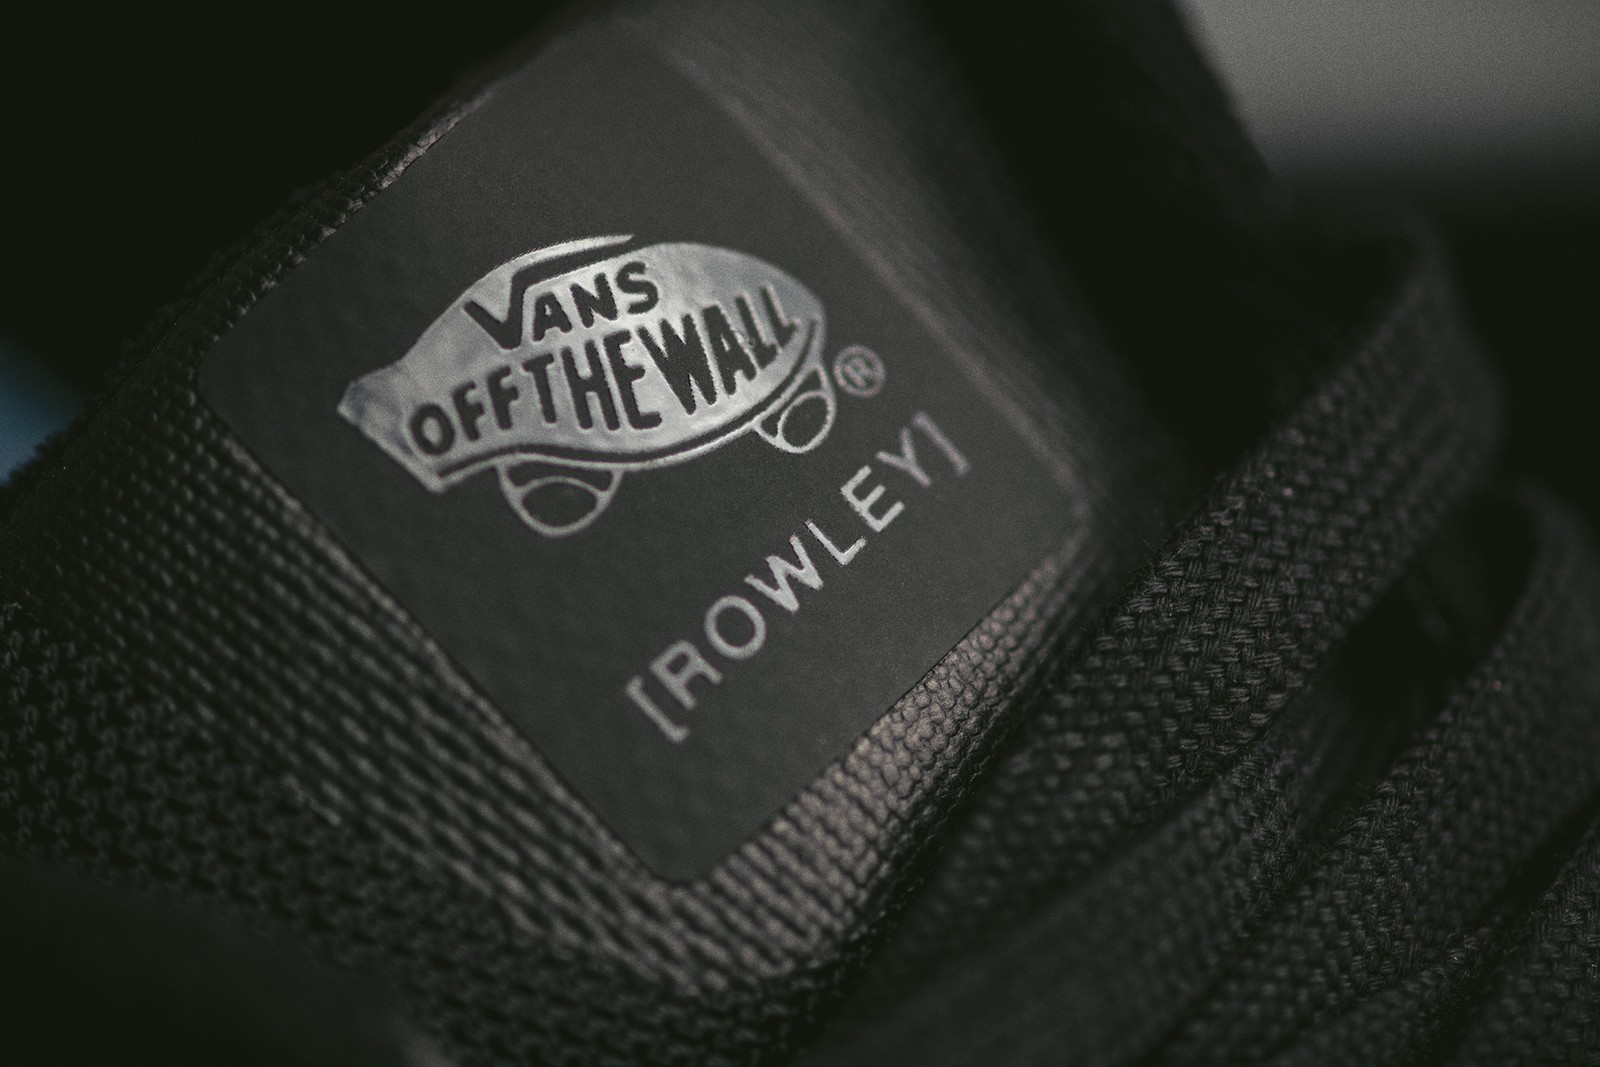 VANS RELEASES ROWLEY RAPIDWELD PRO LTD—INSPIRED BY '90S FOOTWEAR DESIGN